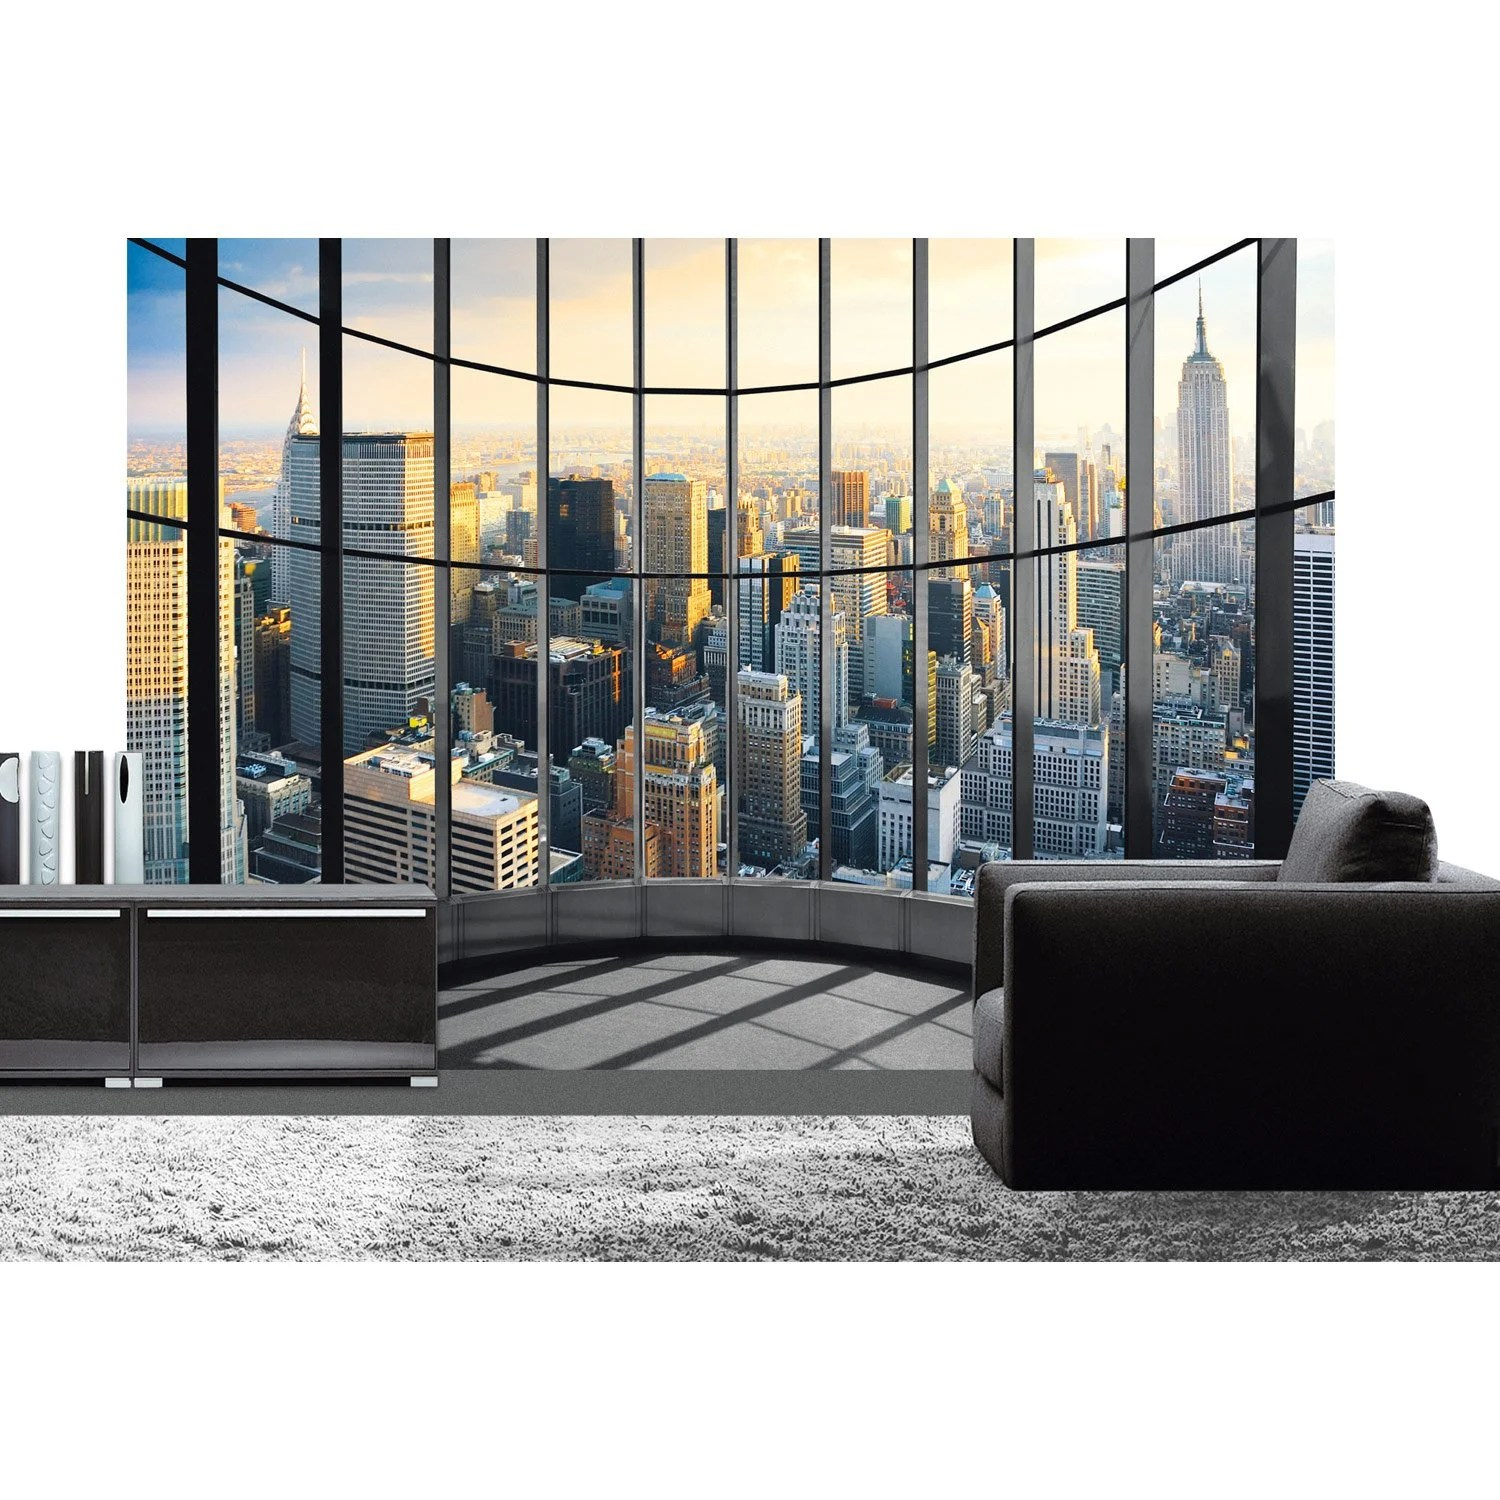 Tapisserie New York Leroy Merlin Poster Xxl De Mur Office View Deco Wall L 366 X H 254 Cm